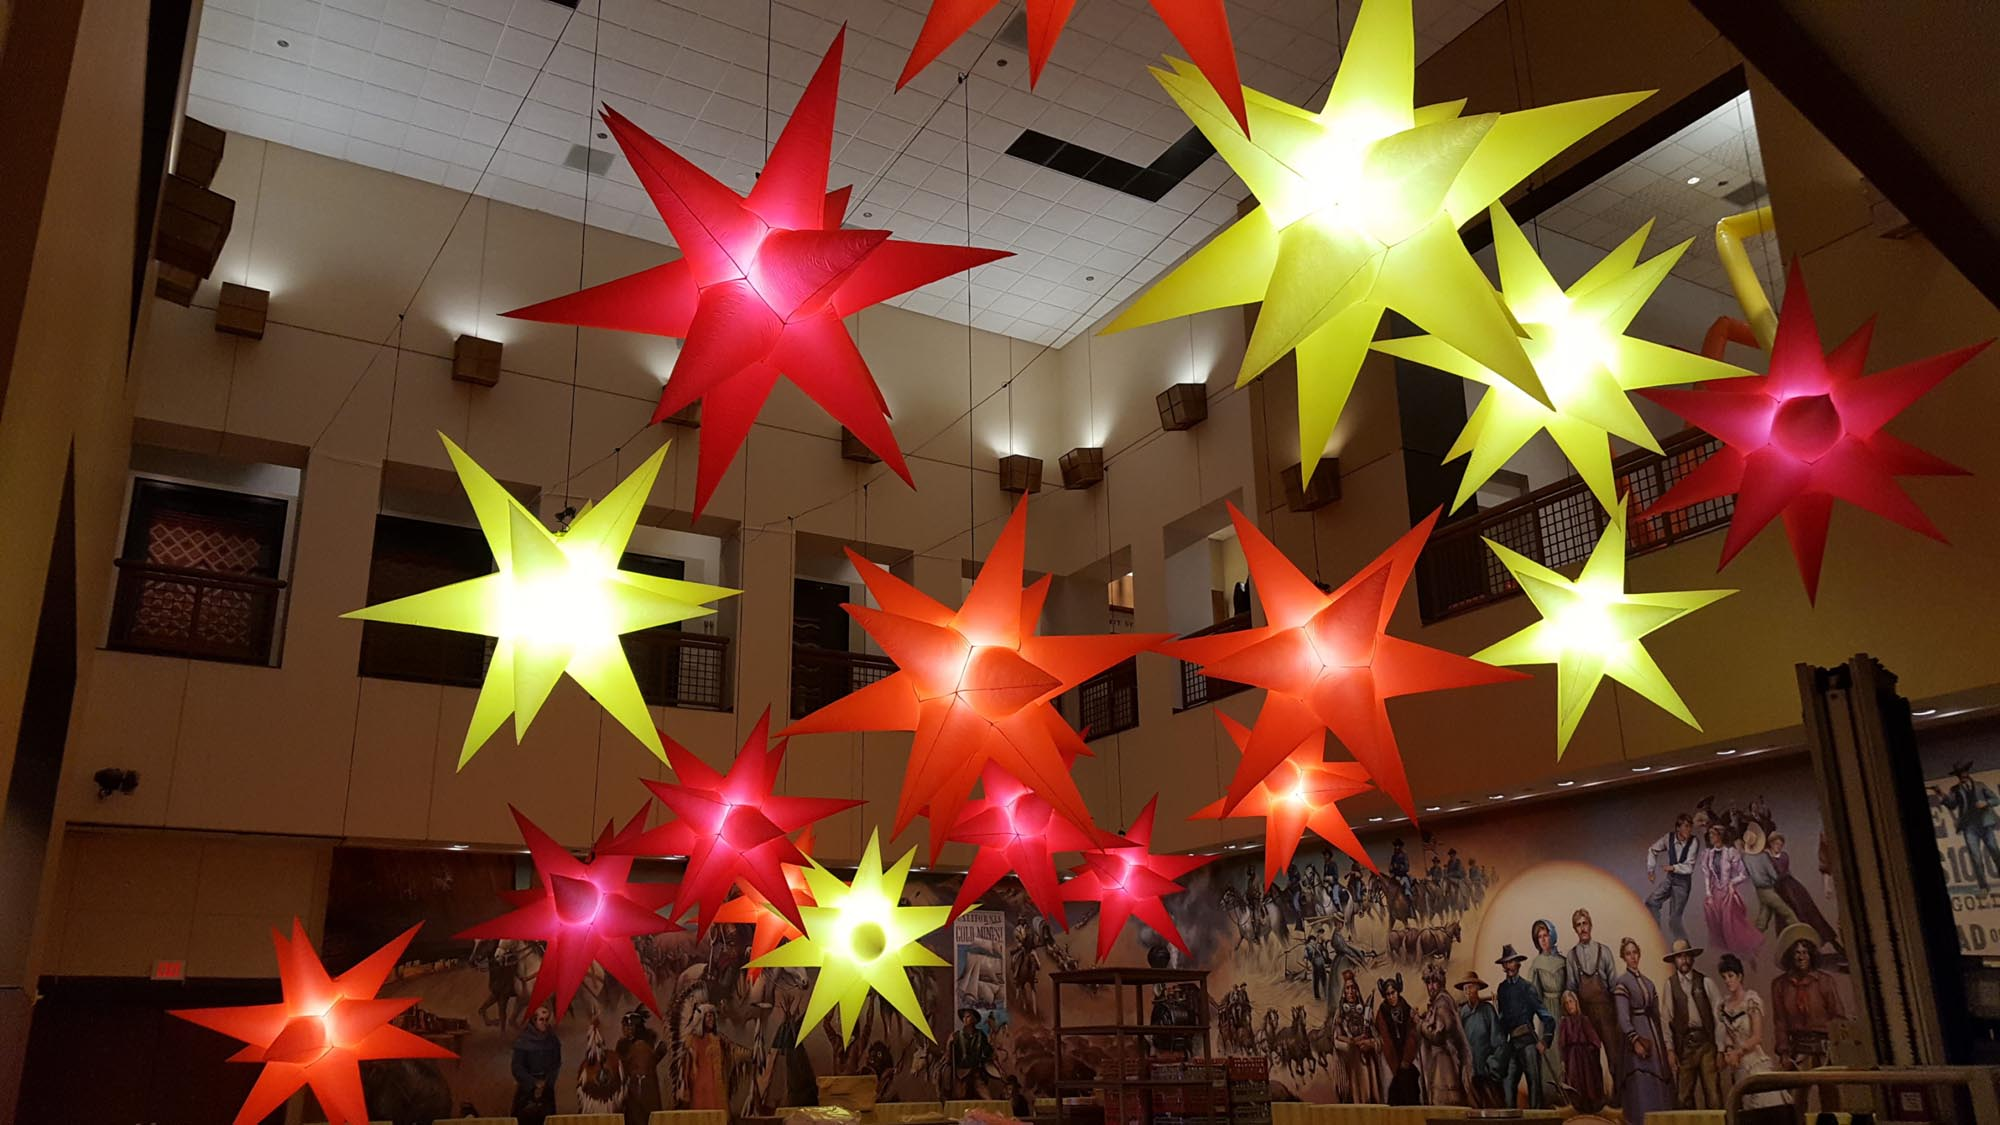 Red, Yellow and Orange Star Hi-Lights Hanging from Ceiling